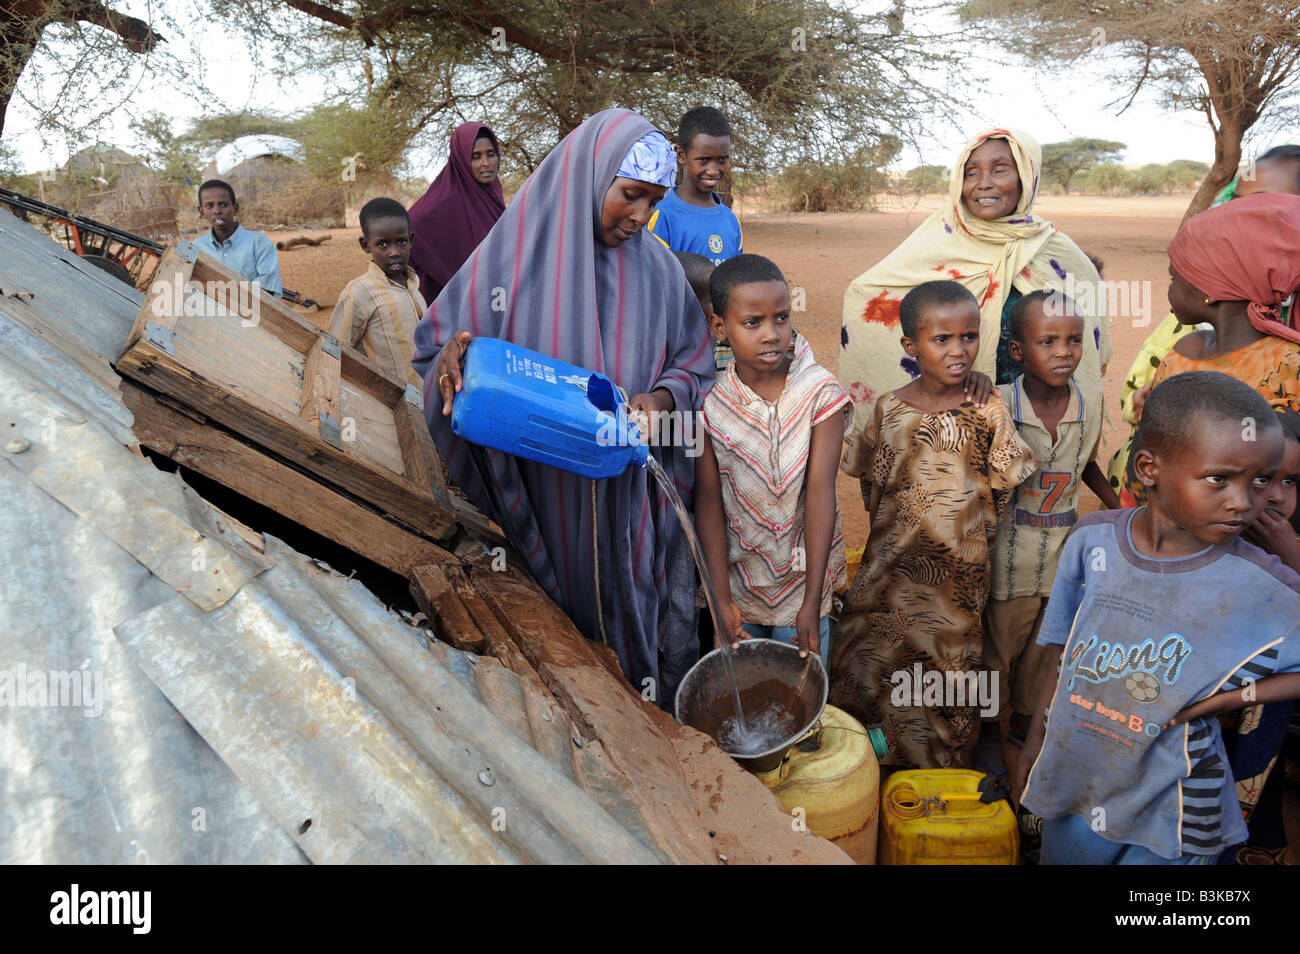 At Belet Amin, a camp for internally displaced Somalis. The camp was set up for people fleeing the fighting in Somalia - Stock Image